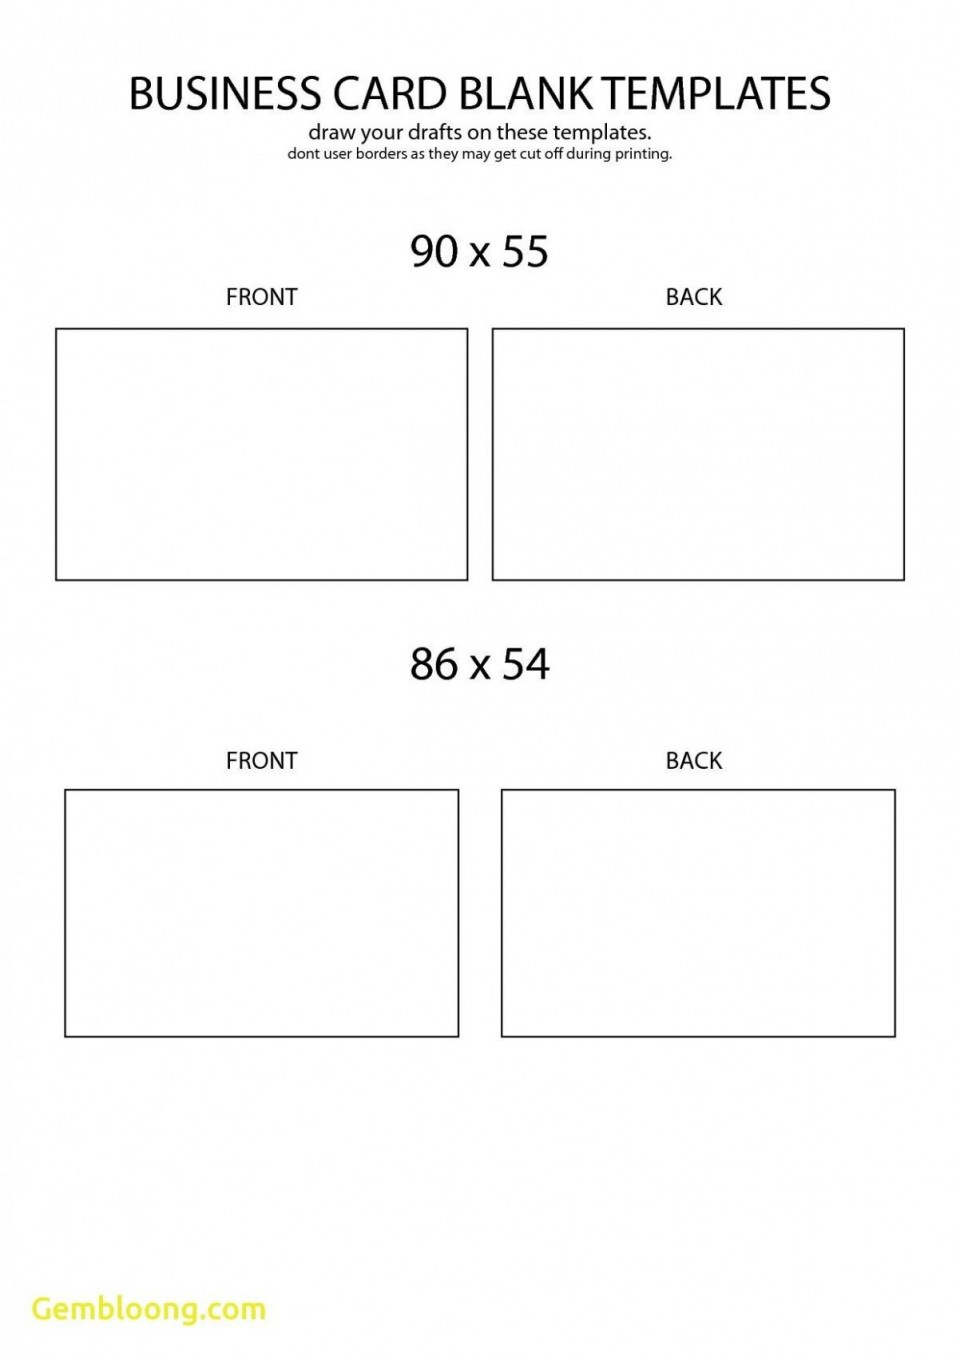 009 Dreaded Busines Card Blank Template Image  Download Free960